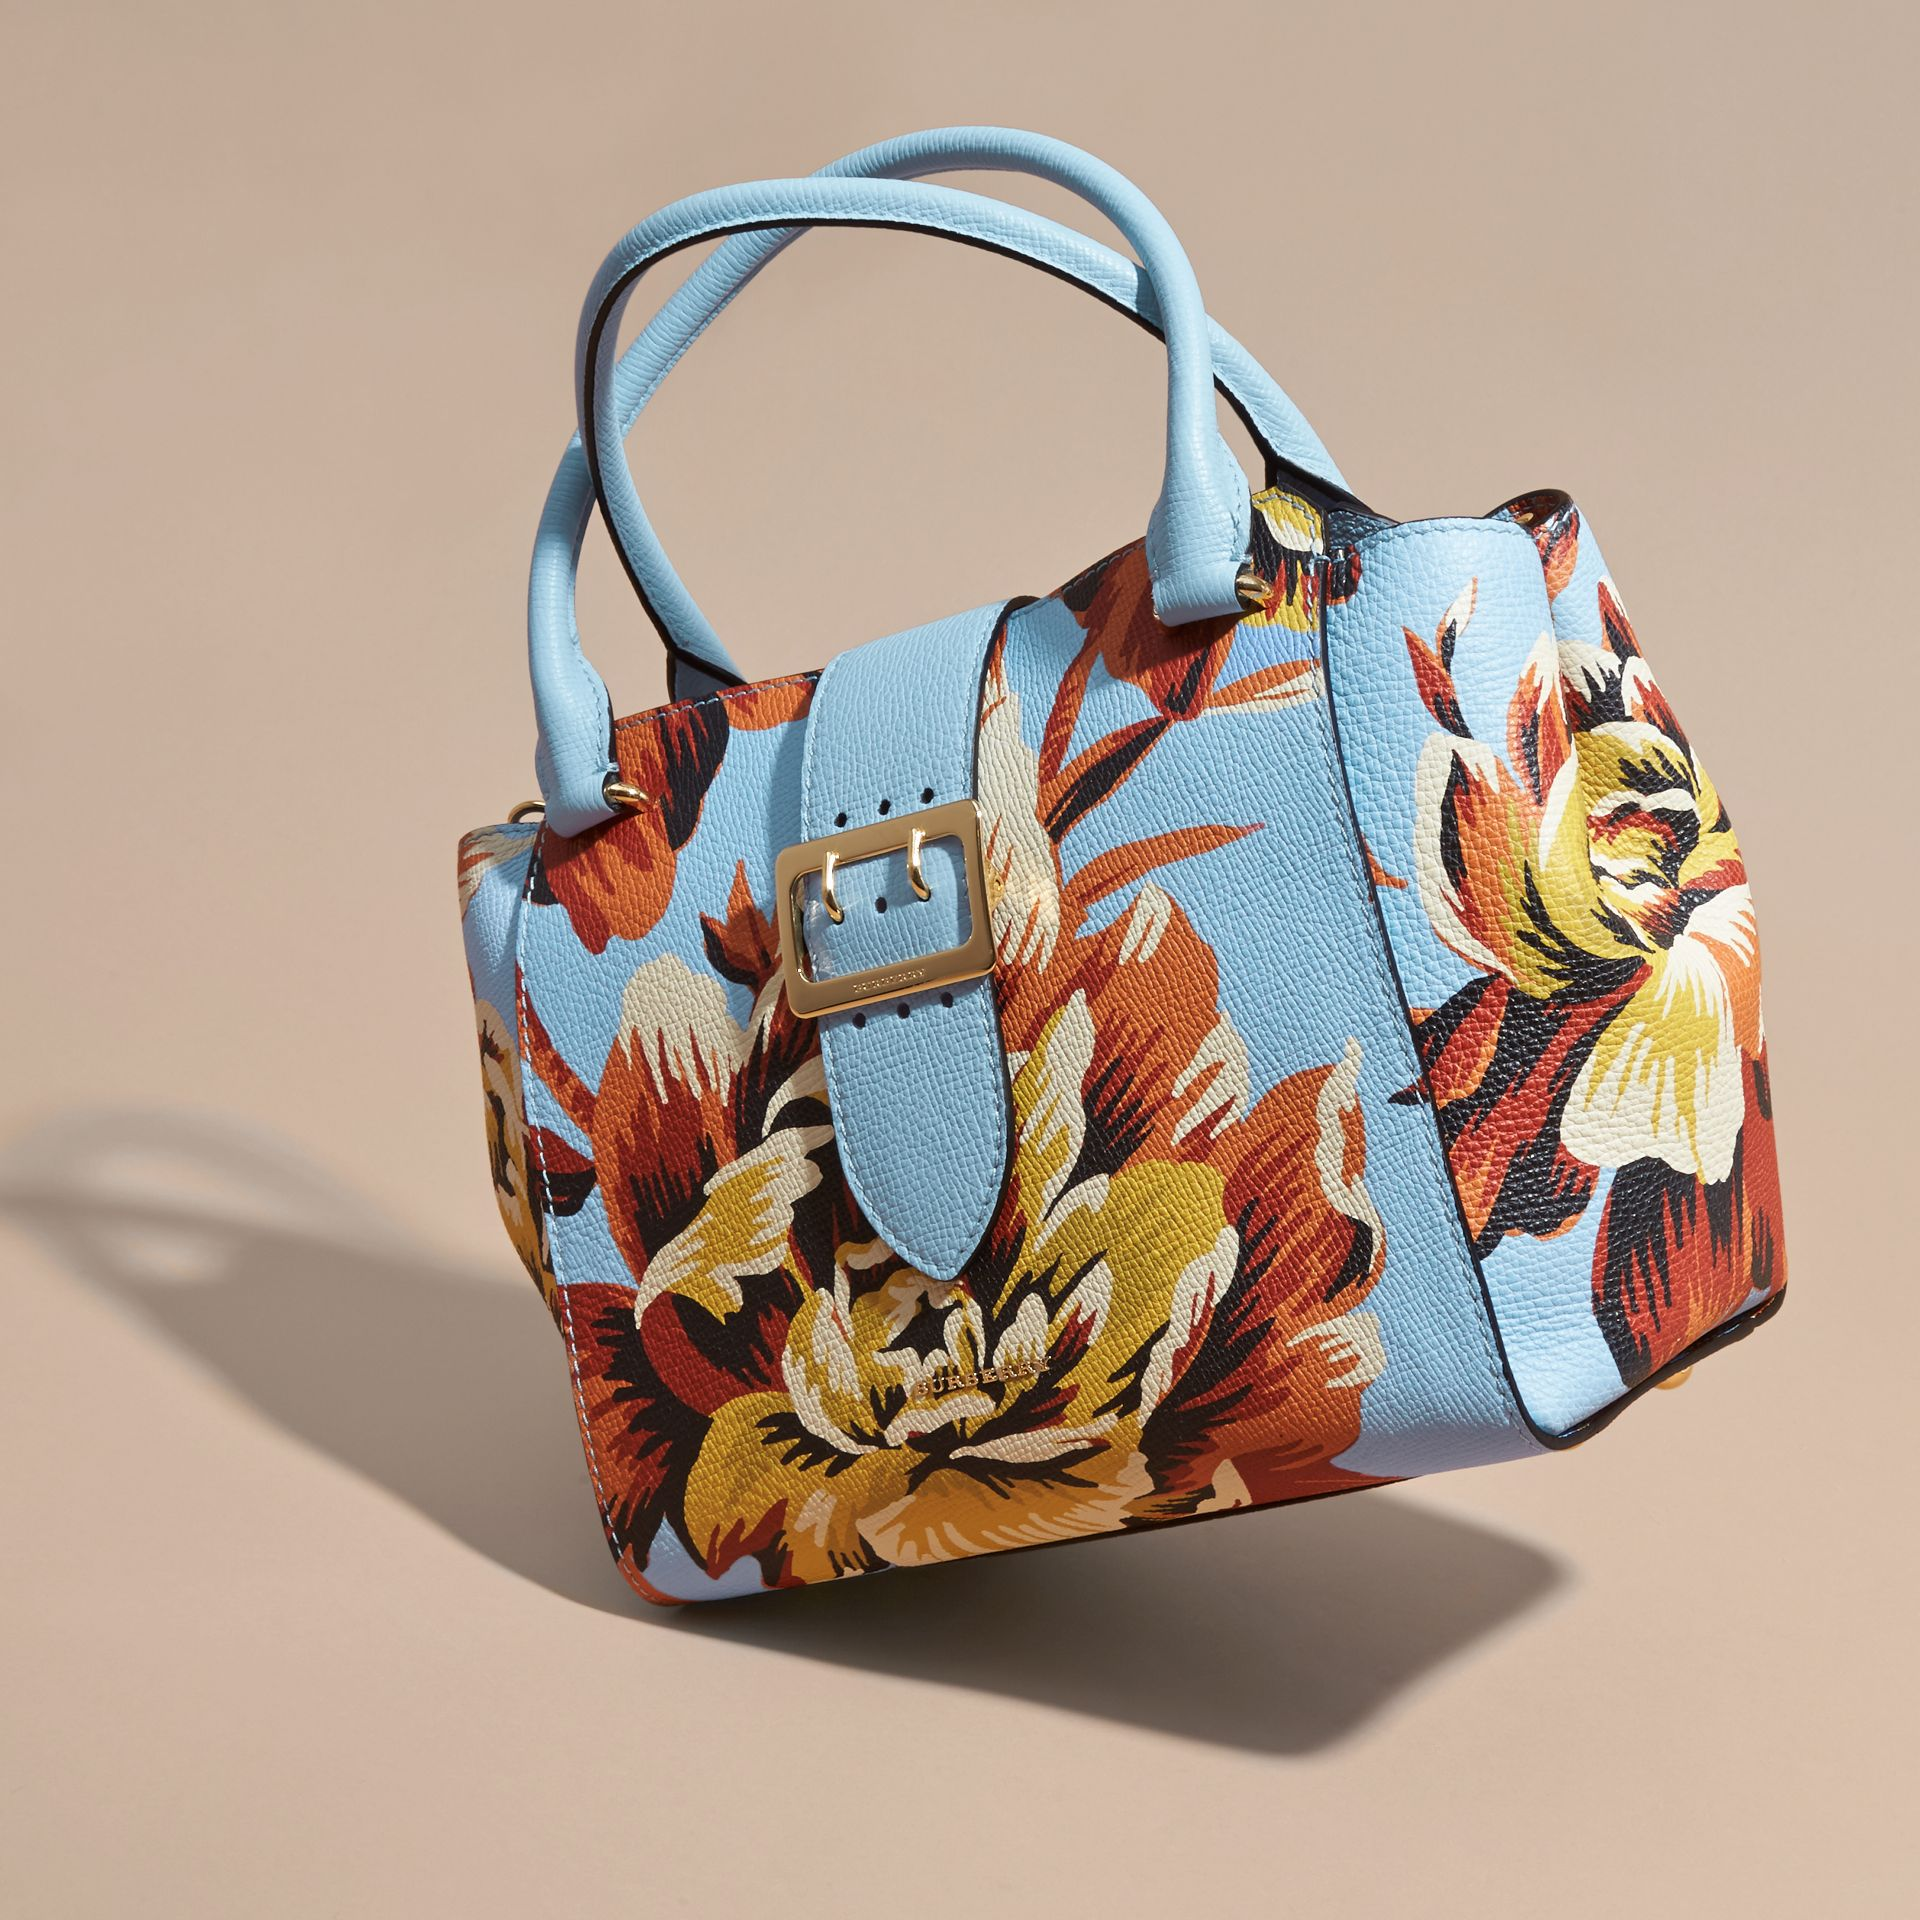 Pale blue/vibrant orange The Medium Buckle Tote in Peony Rose Print Leather Pale Blue/vibrant Orange - gallery image 8